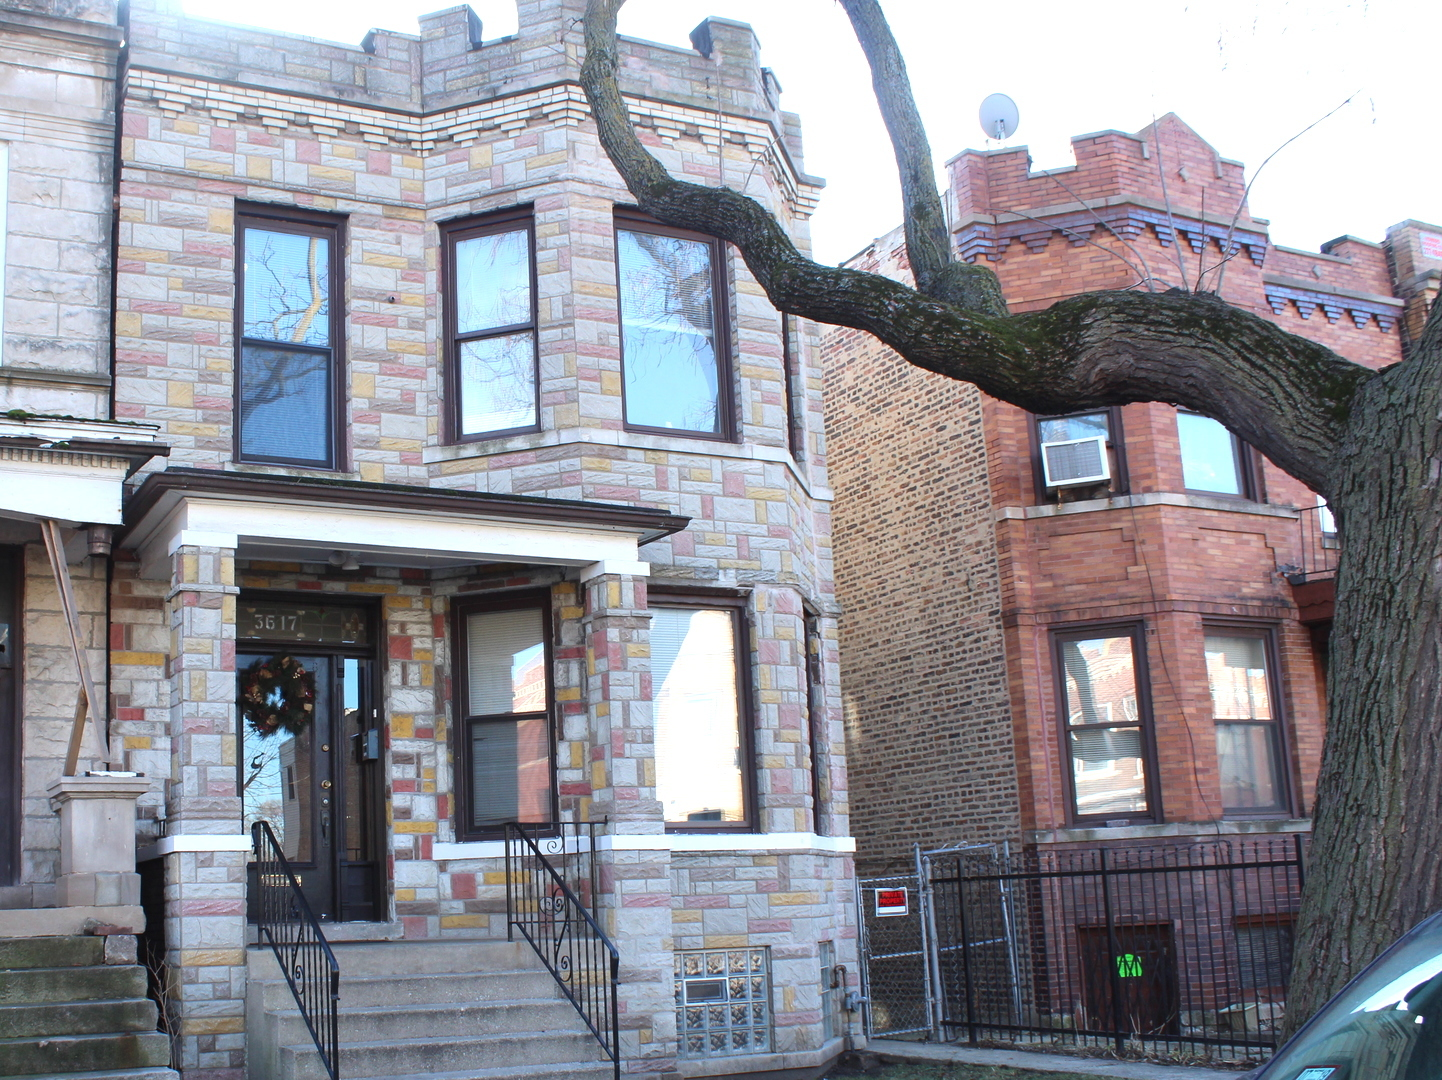 3617 Grenshaw ,Chicago, Illinois 60624